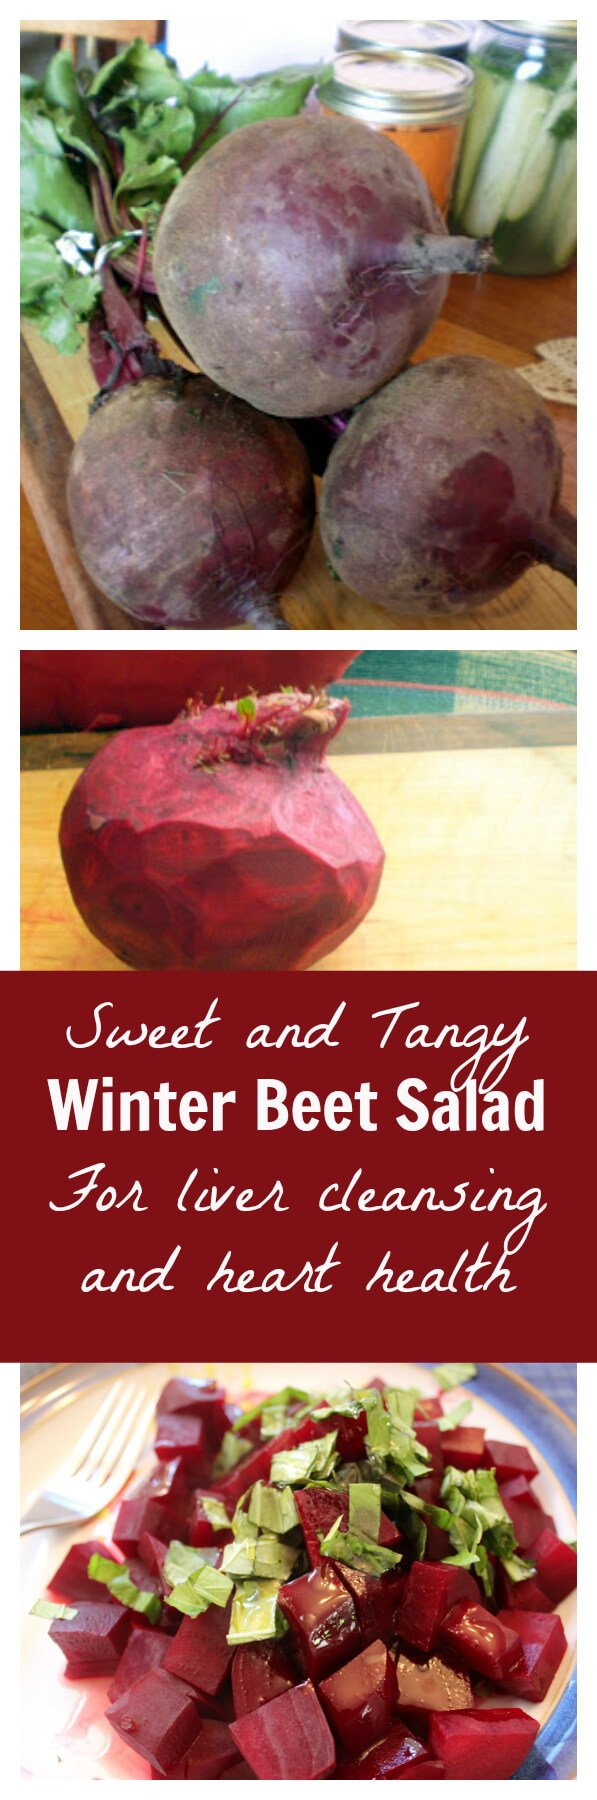 Winter Beet Salad with fresh ingredients